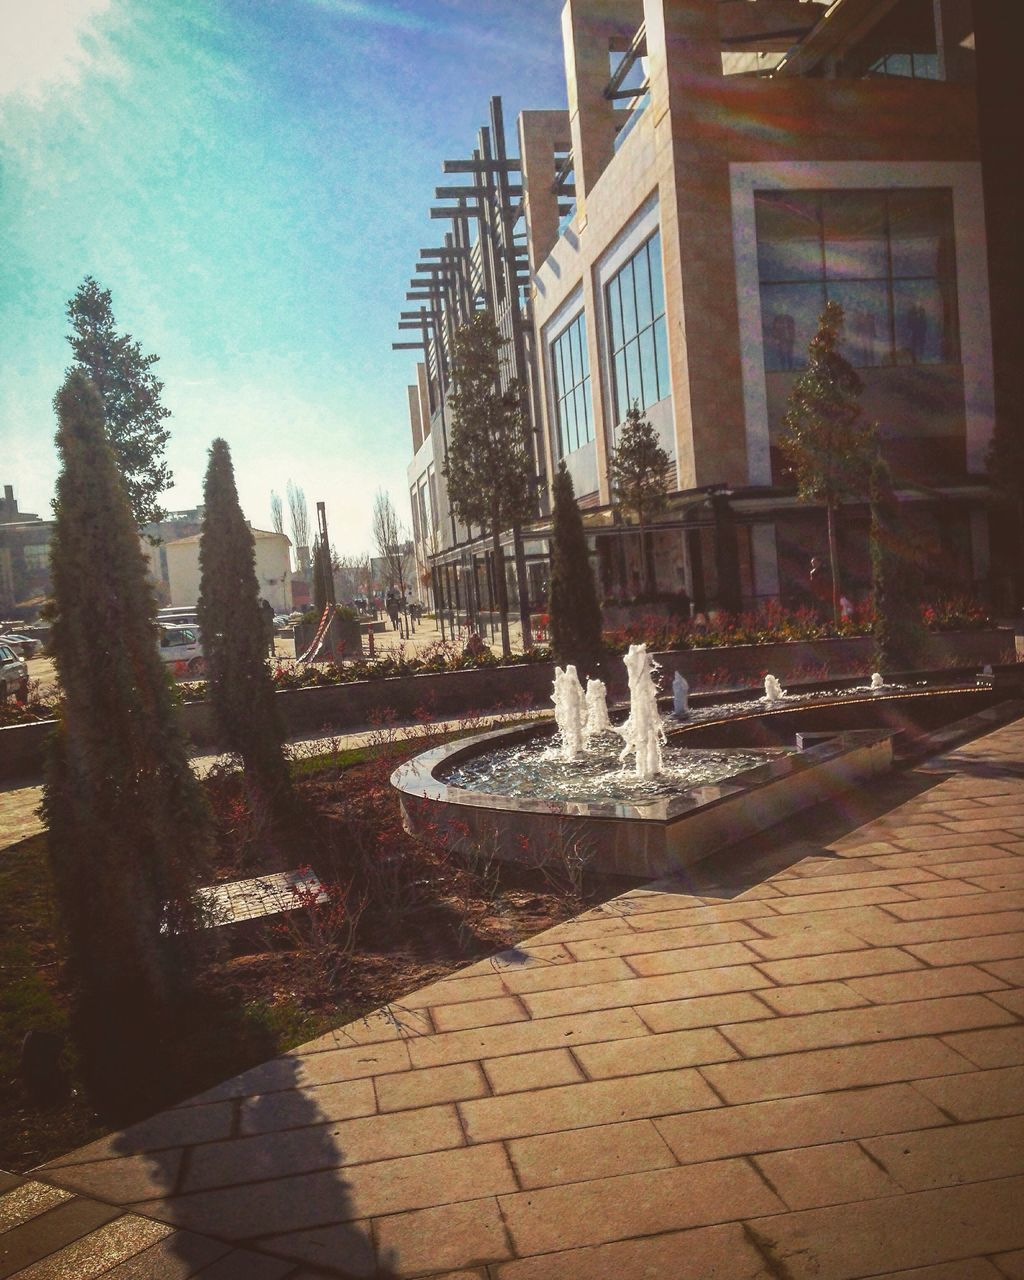 fountain, architecture, building exterior, tree, built structure, day, water, statue, motion, no people, outdoors, growth, sculpture, nature, city, sky